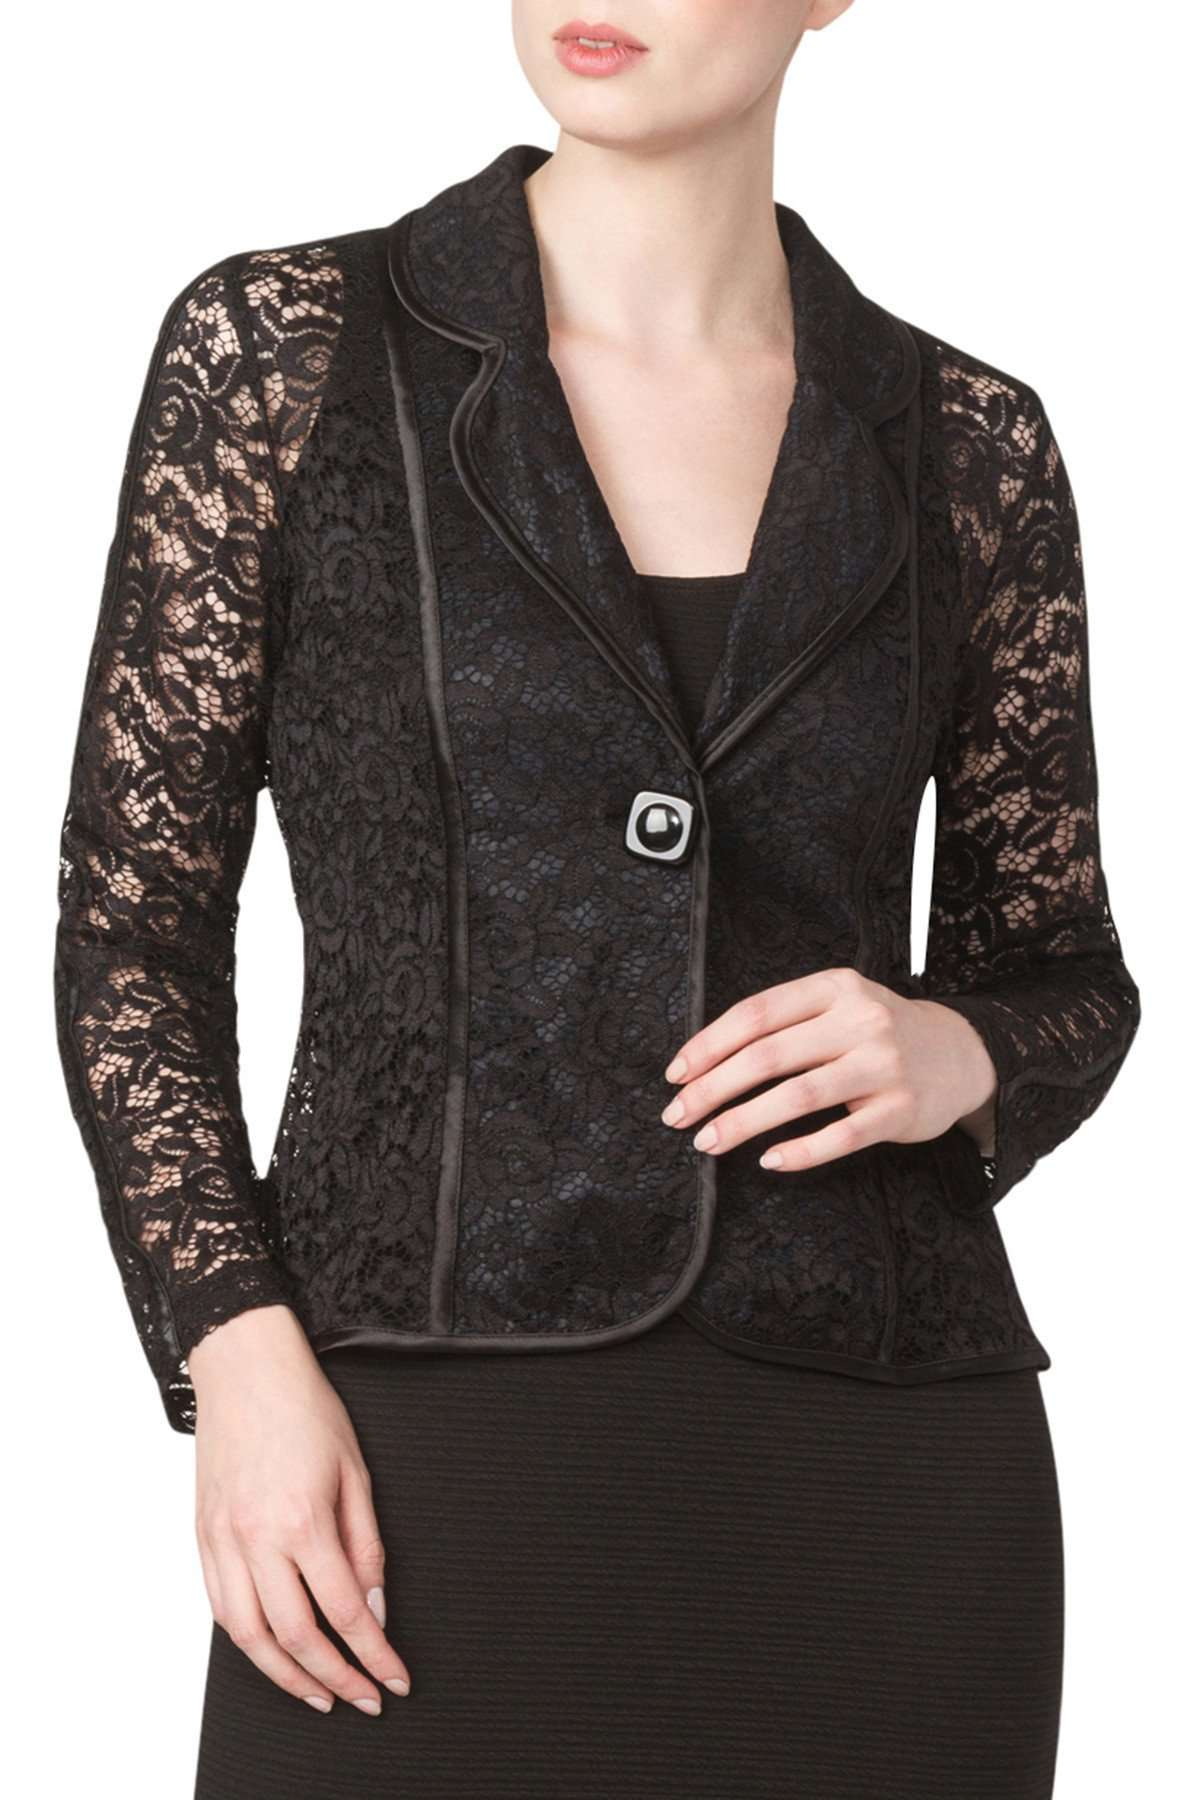 Black Lace Jacket Made in Soft Stretch Lace-Comfort and Quality Guaranteed-Our Best Seller - Yvonne Marie